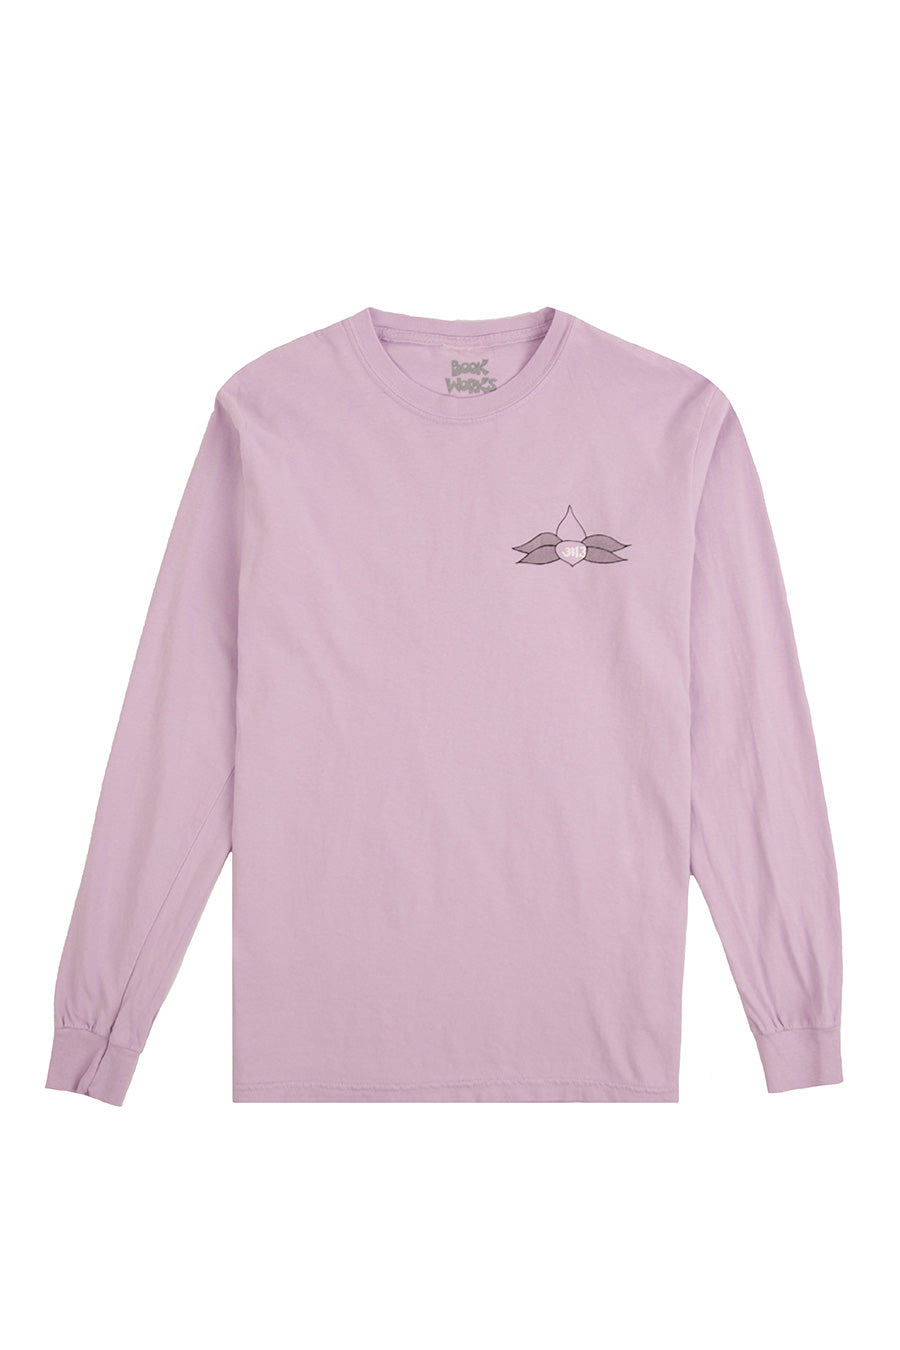 Book Works - Purple Lotus Long Sleeve Tee | 1032 SPACE